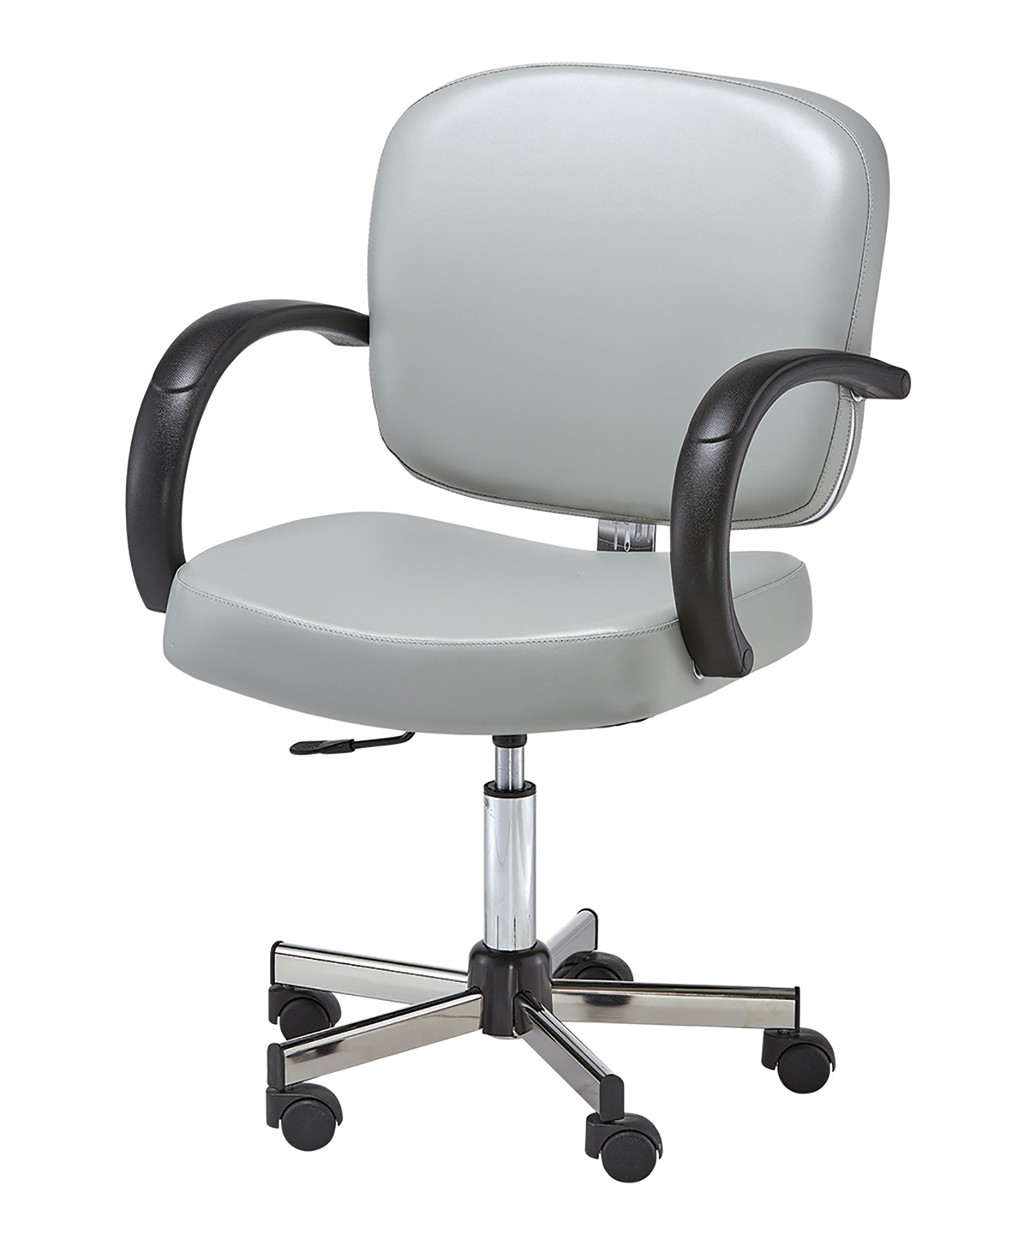 Grey Desk Chair Pibbs 3692 Messina Desk Chair